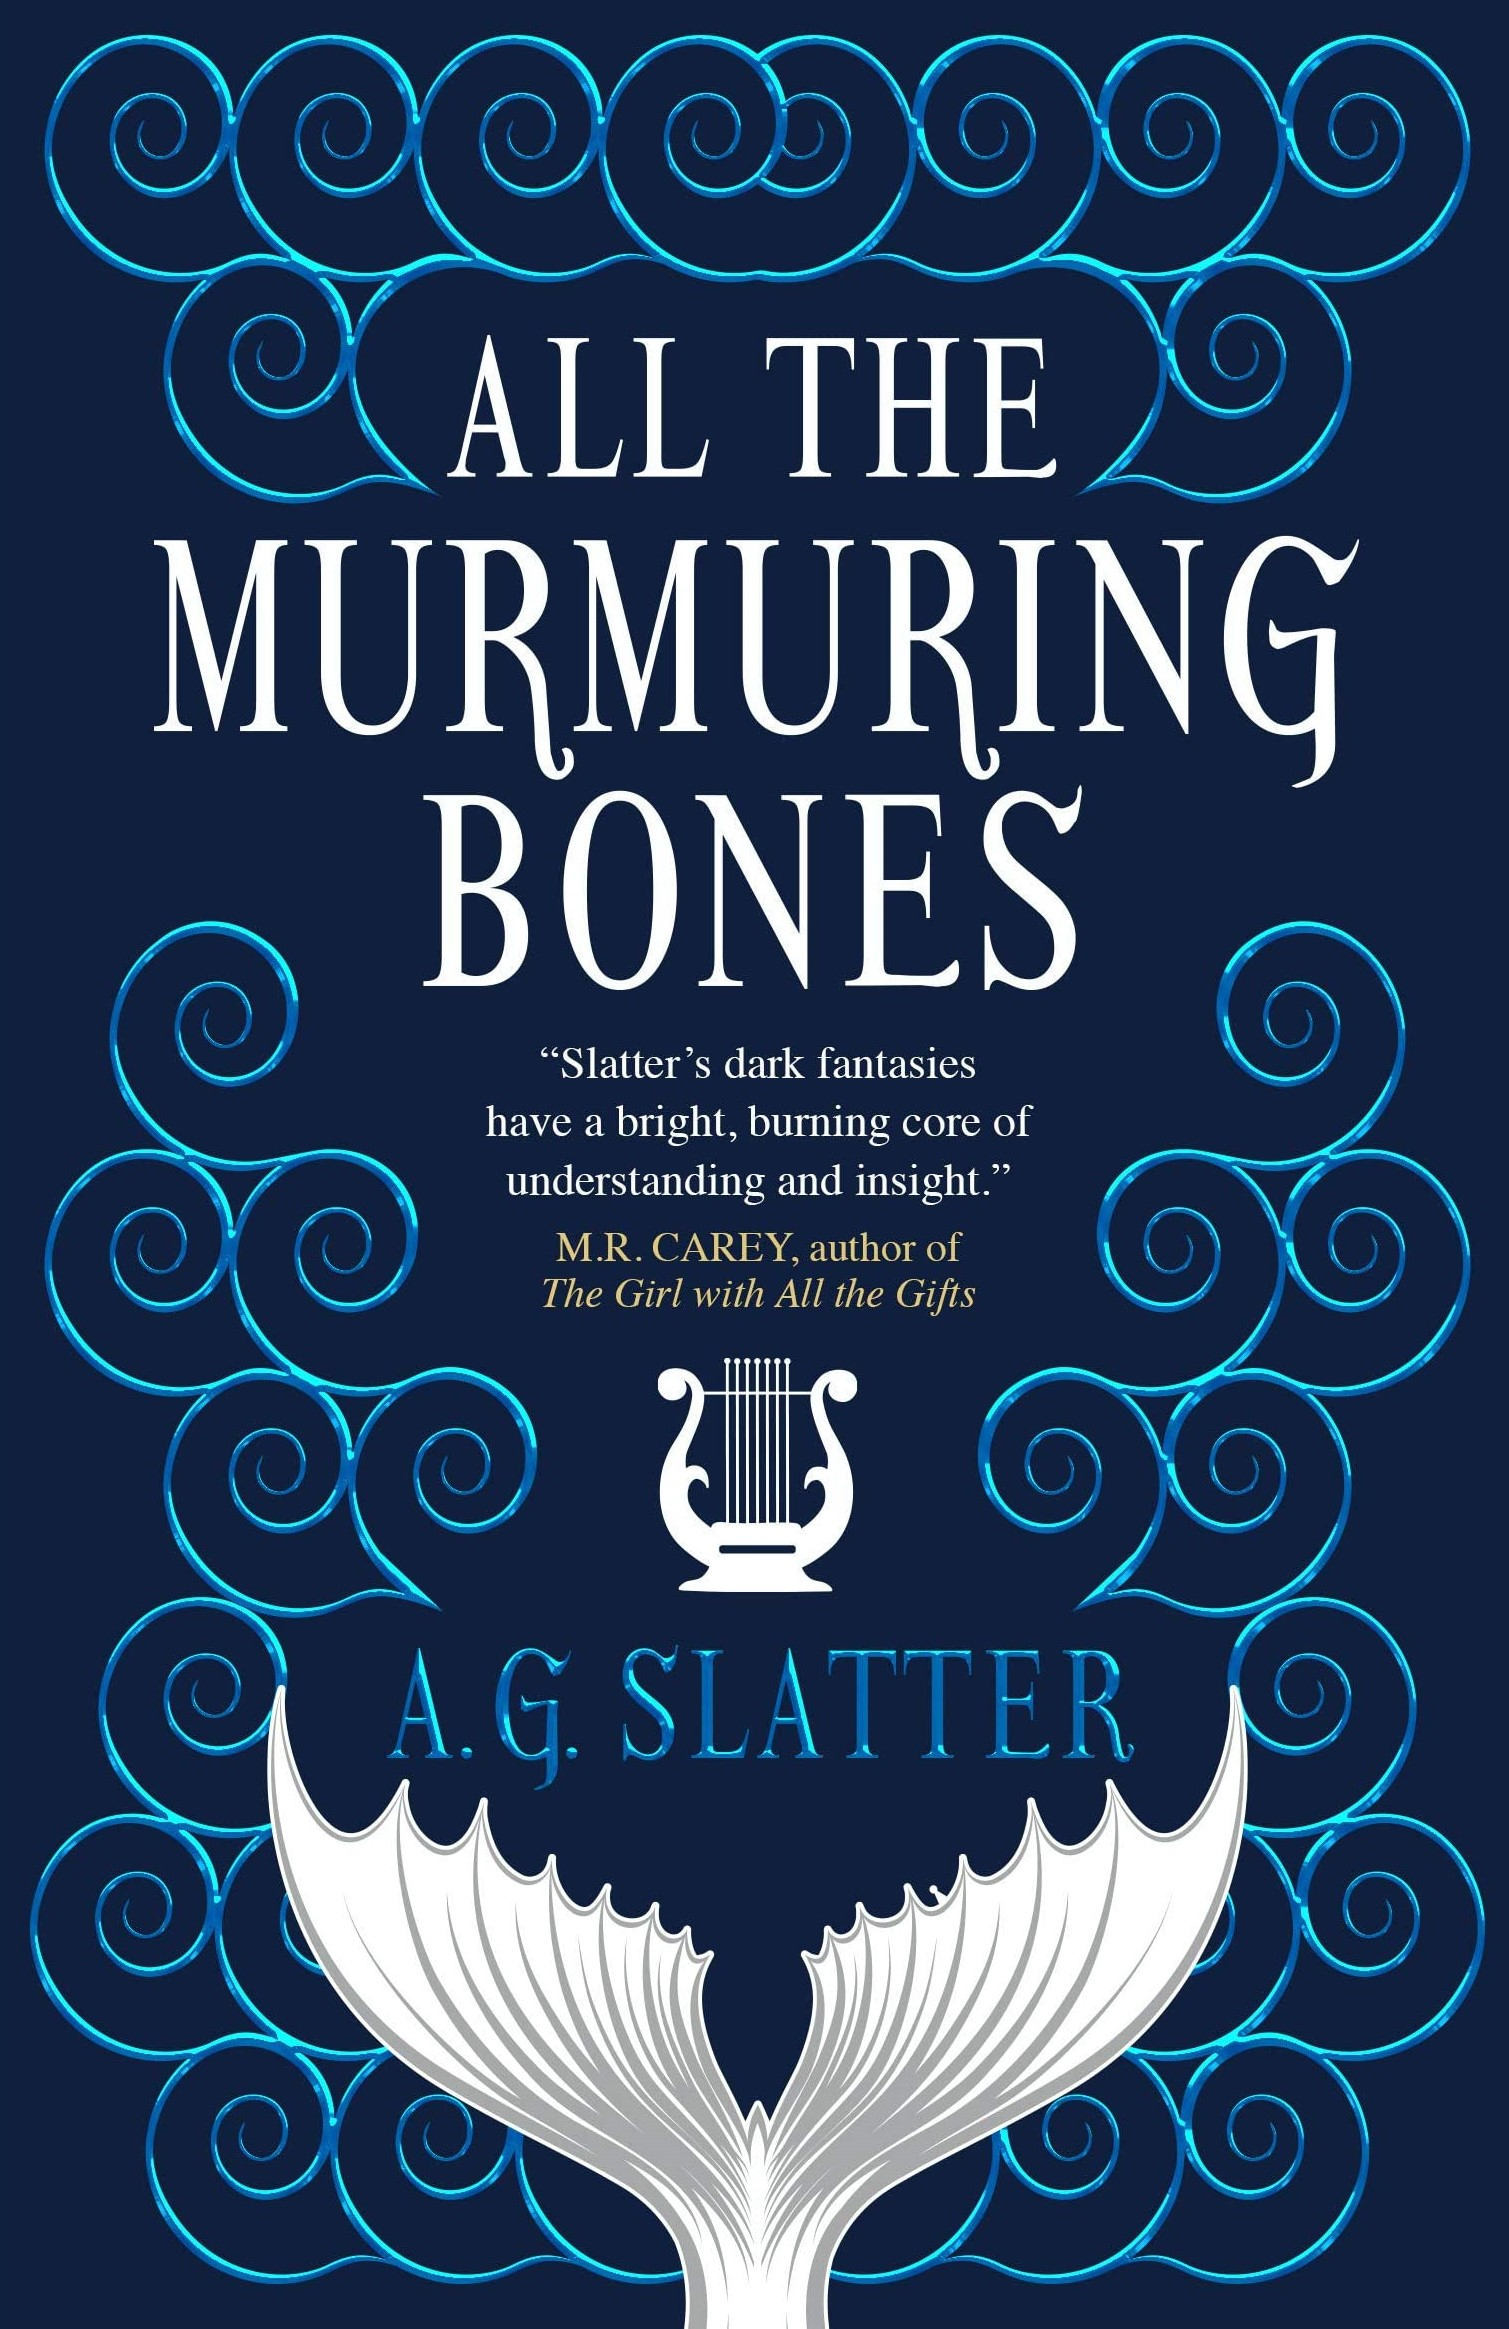 Cover for All the Murmuring Bones by A.G. Slatter. White writing on a dark blue background with light blue stylised waves surrounding the author's name, also in blue, and a large mermaid tail in white